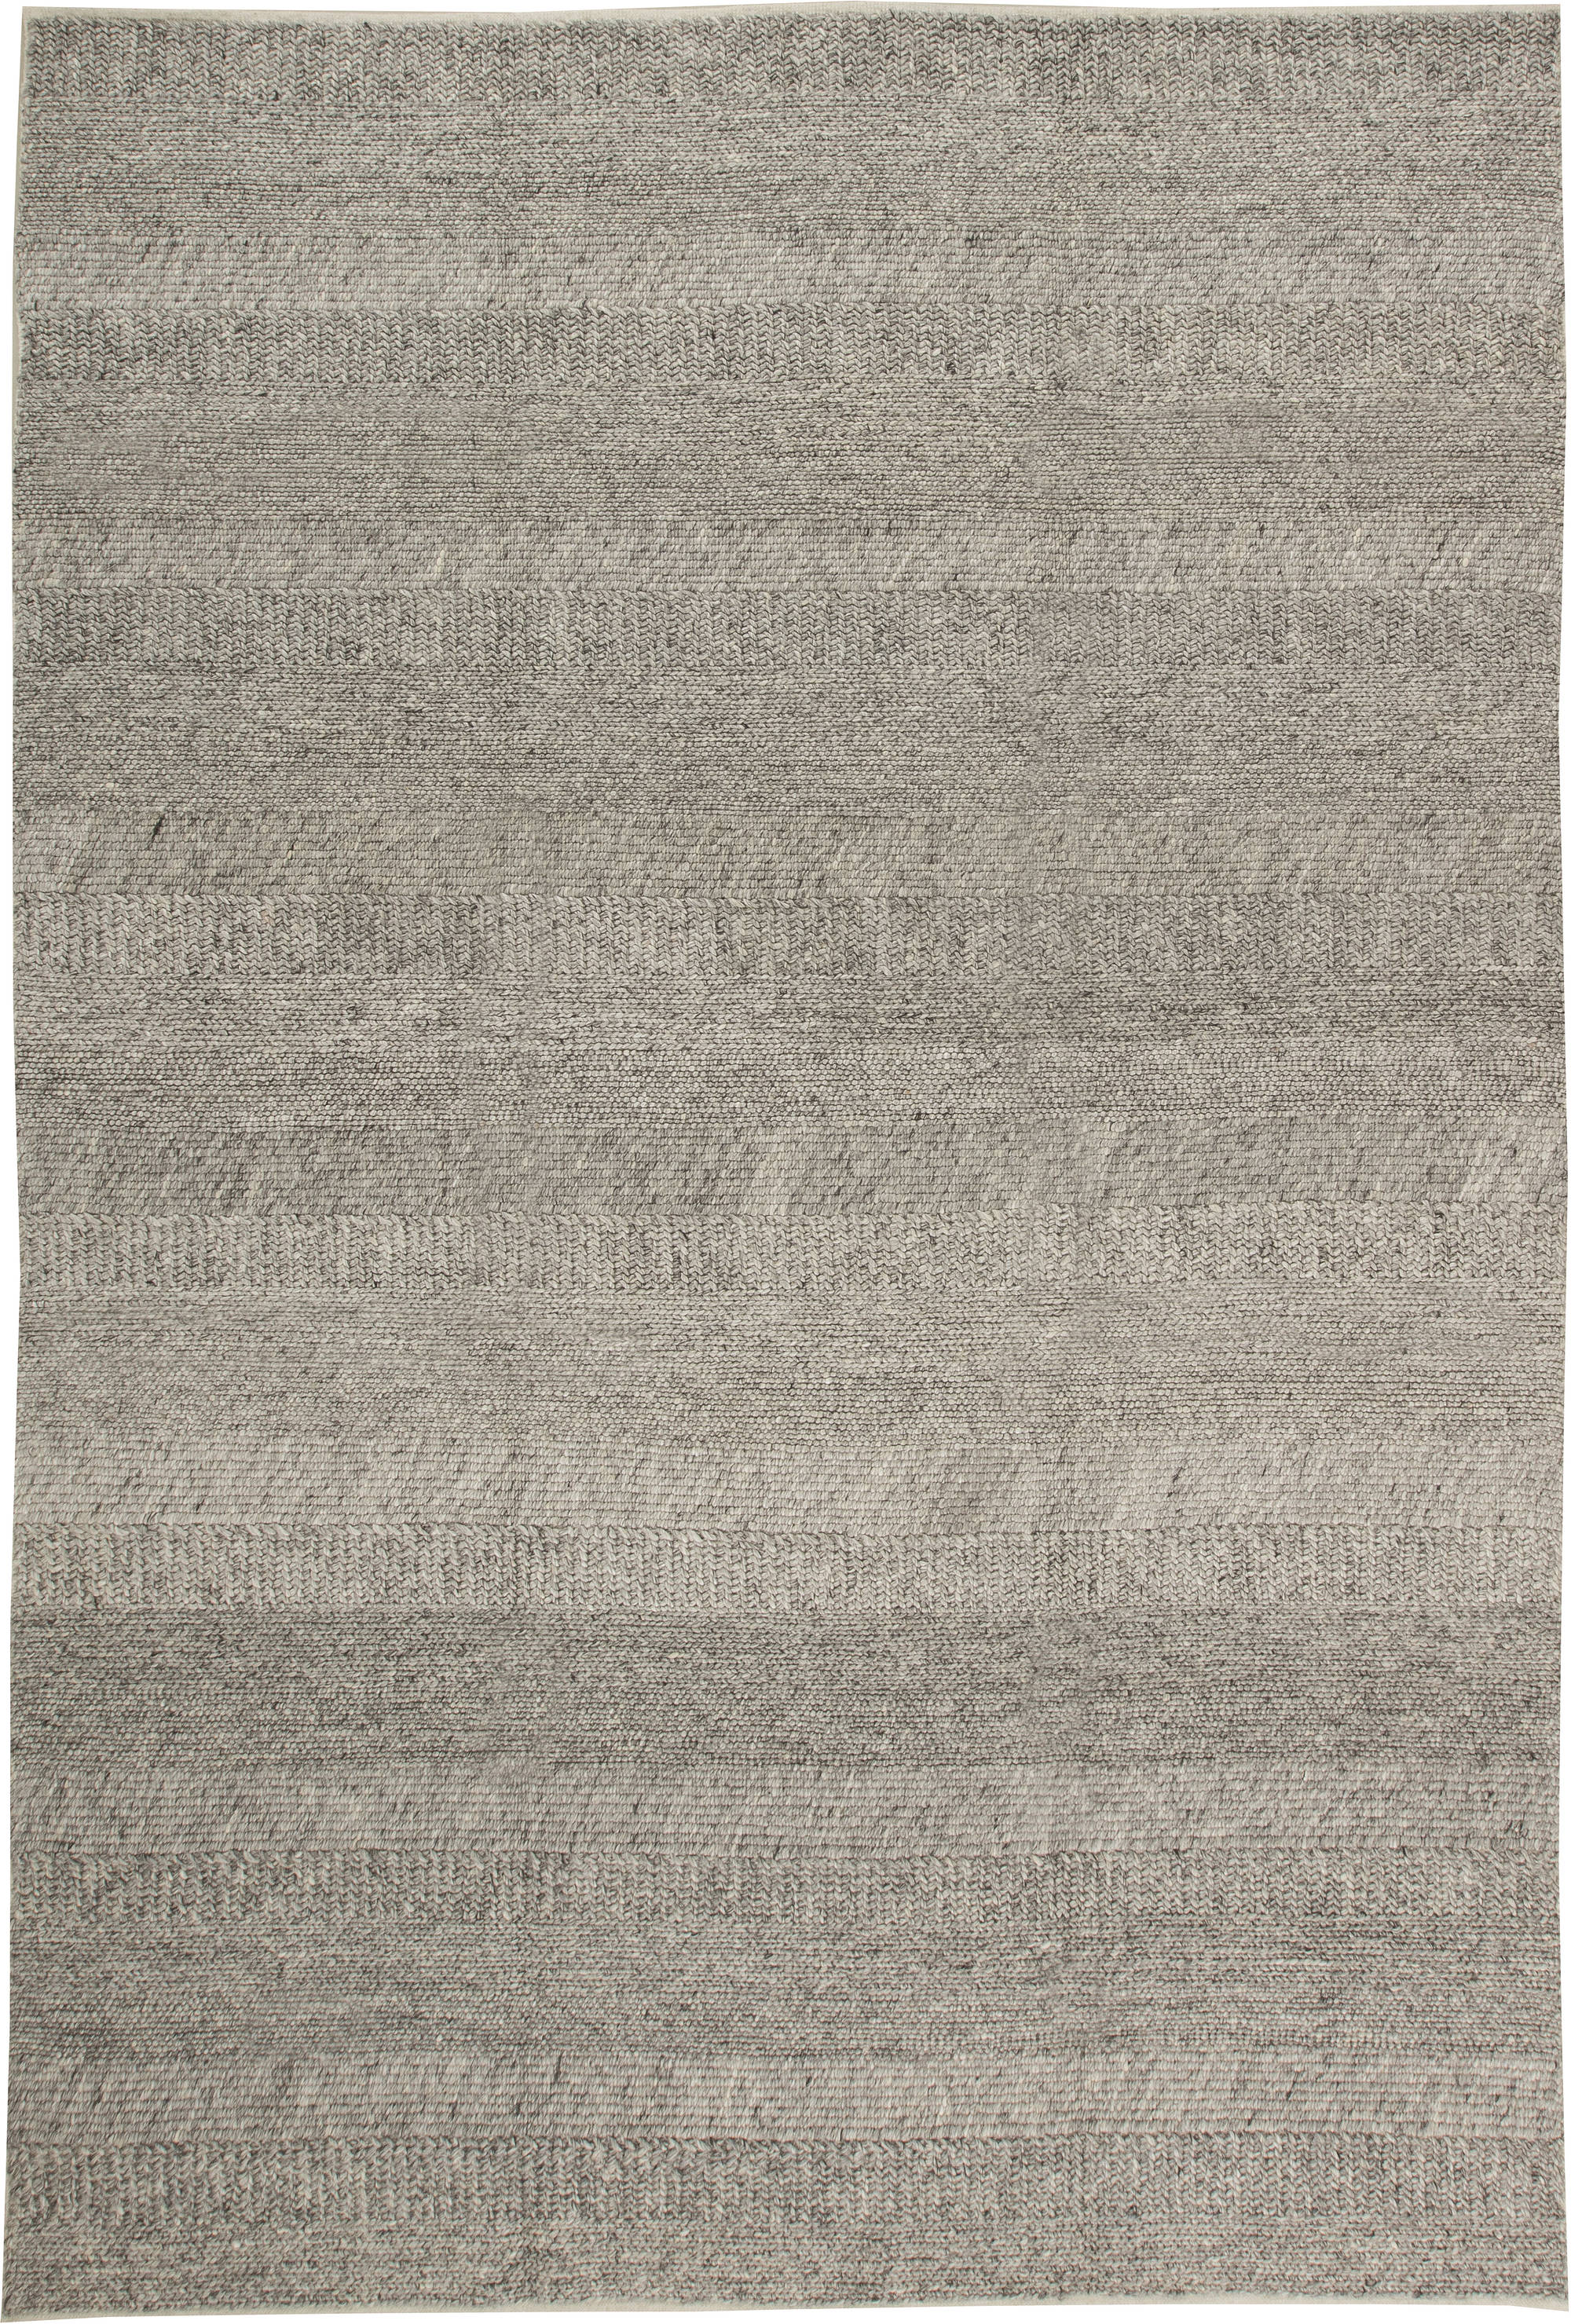 Contemporary Flat weave Rug N11403